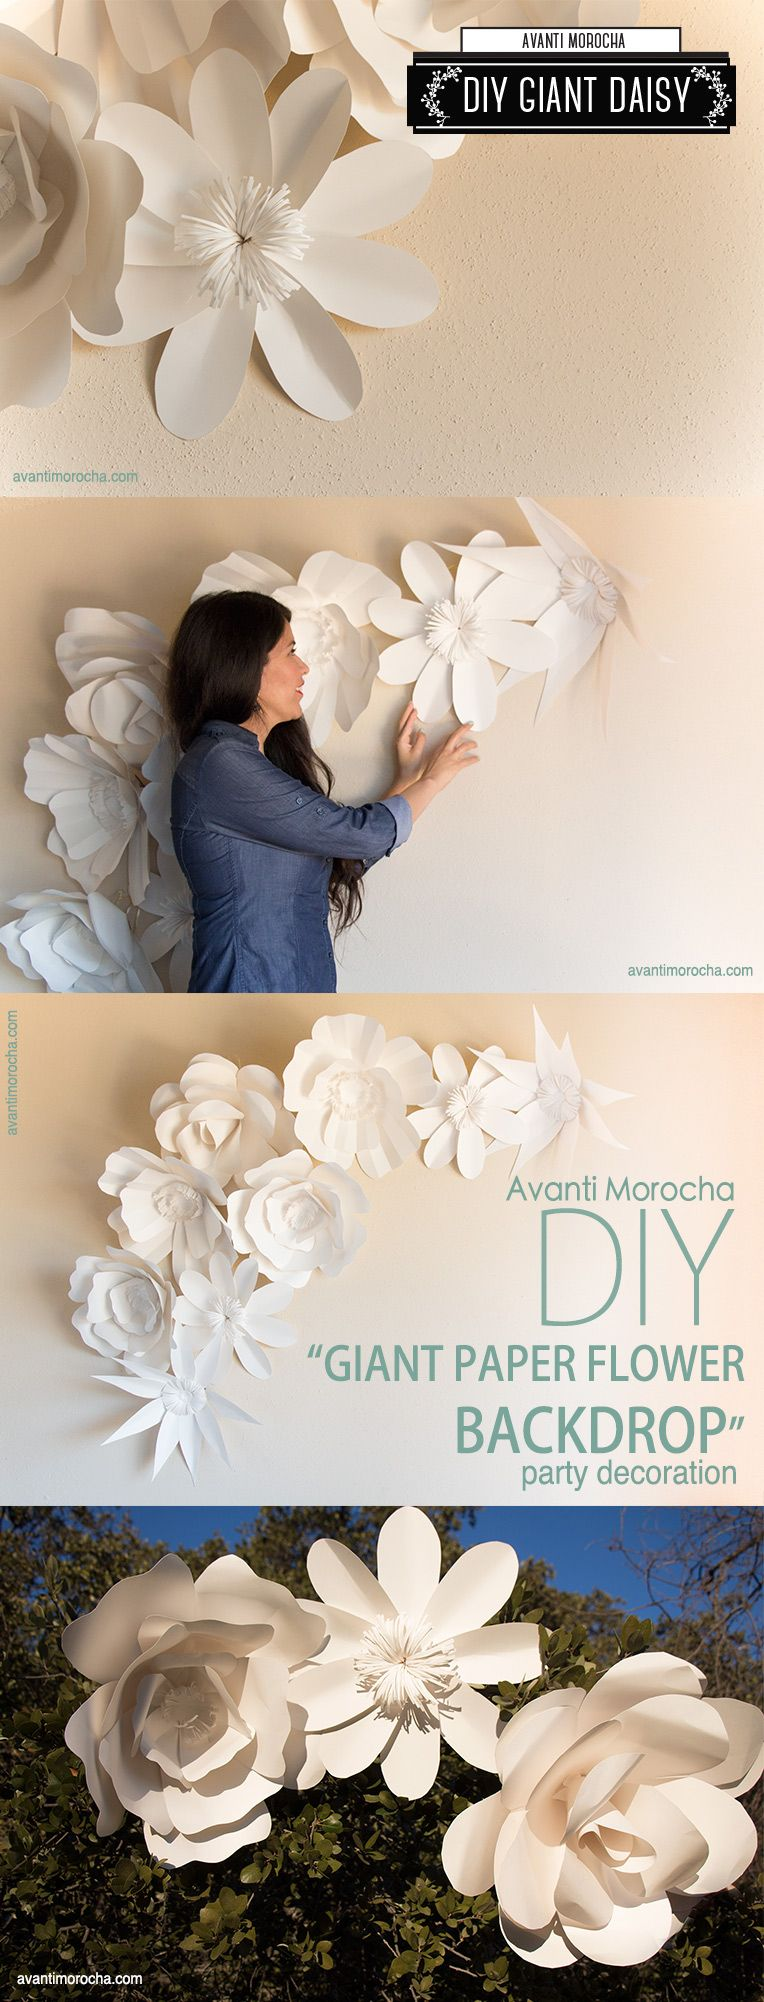 Download the app to see diy giant paper flower backdrop tutorials diy giant paper flower backdrop weddings event decor paper backdrops with video tutorials junglespirit Choice Image